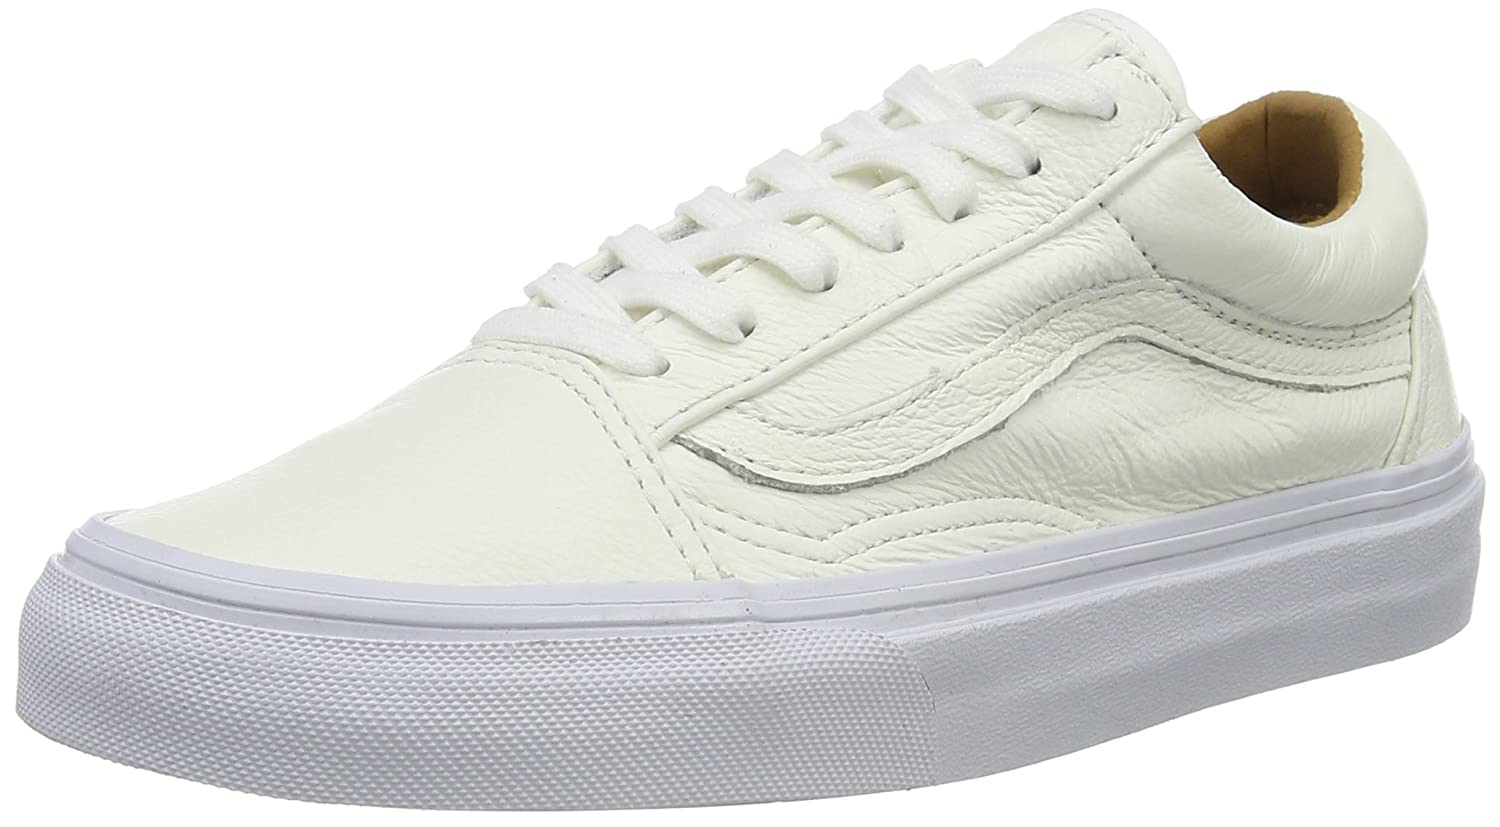 8360a4d35ef Vans Unisex Old Skool Lace-Up Sneakers Off White (Premium Leather) 8 UK   Buy Online at Low Prices in India - Amazon.in